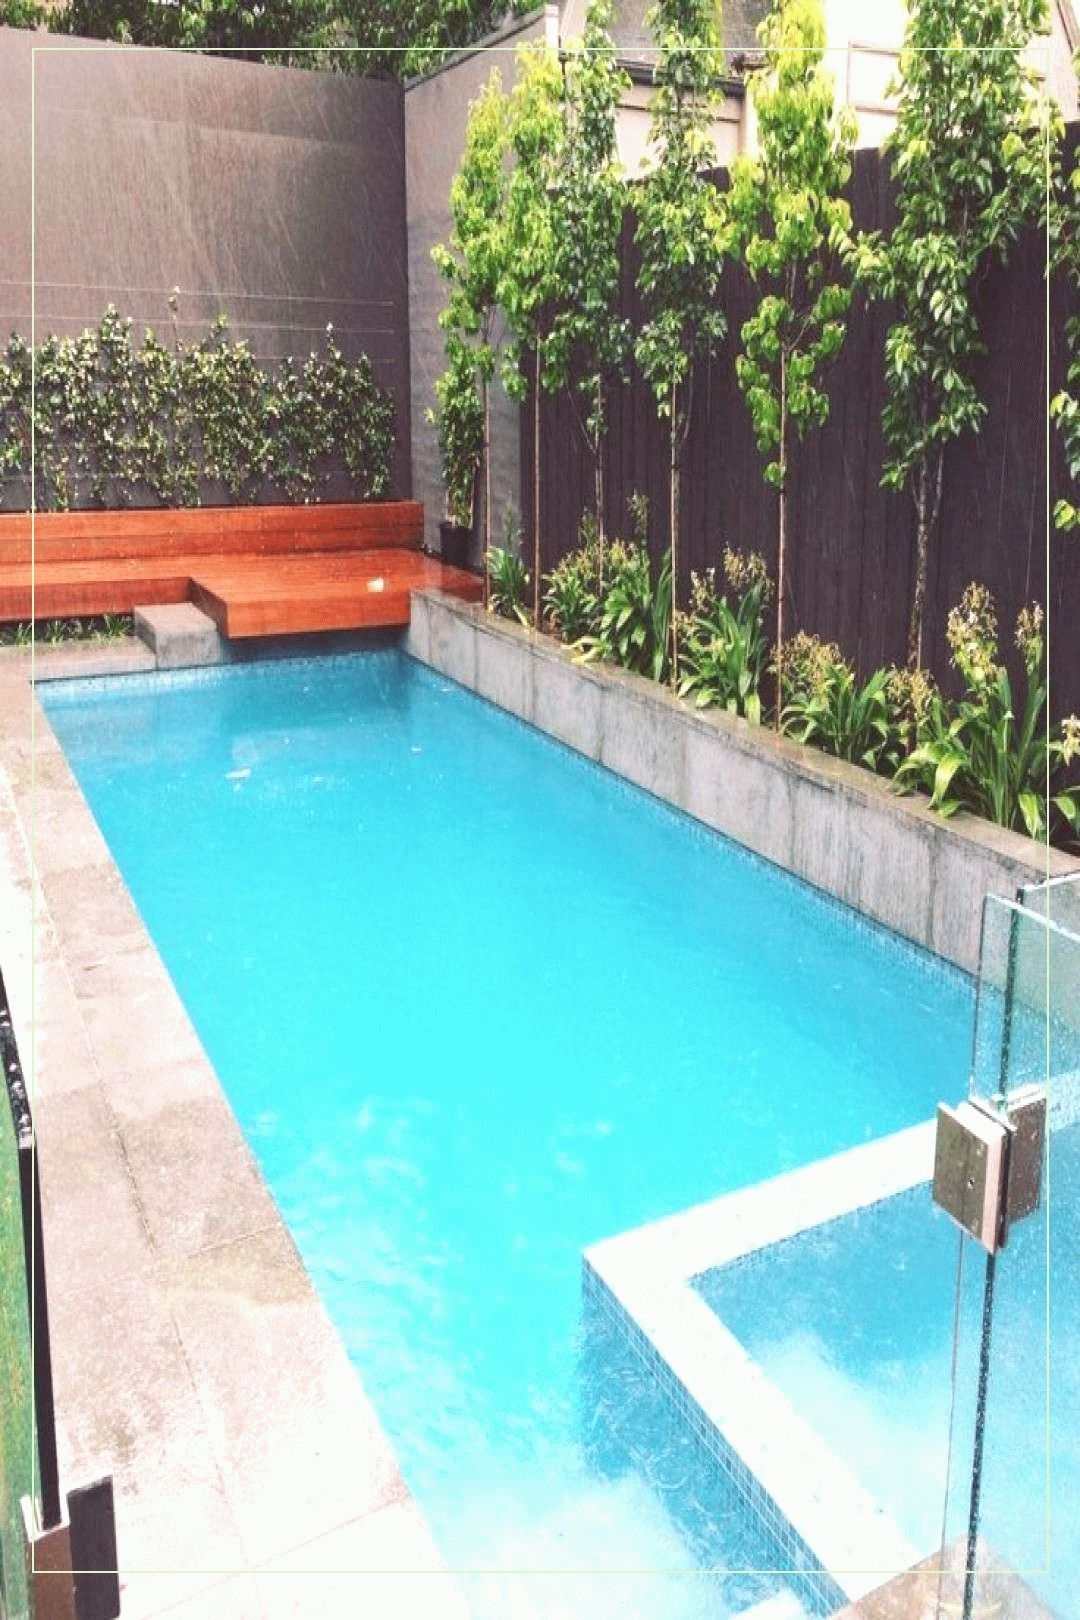 Small Pools 76210 Landscaping Ideas Small 23 Pool Landscaping Ideas Tropical Small Ba Backyard Pool Landscaping Indoor Pool Design Swimming Pool Landscaping